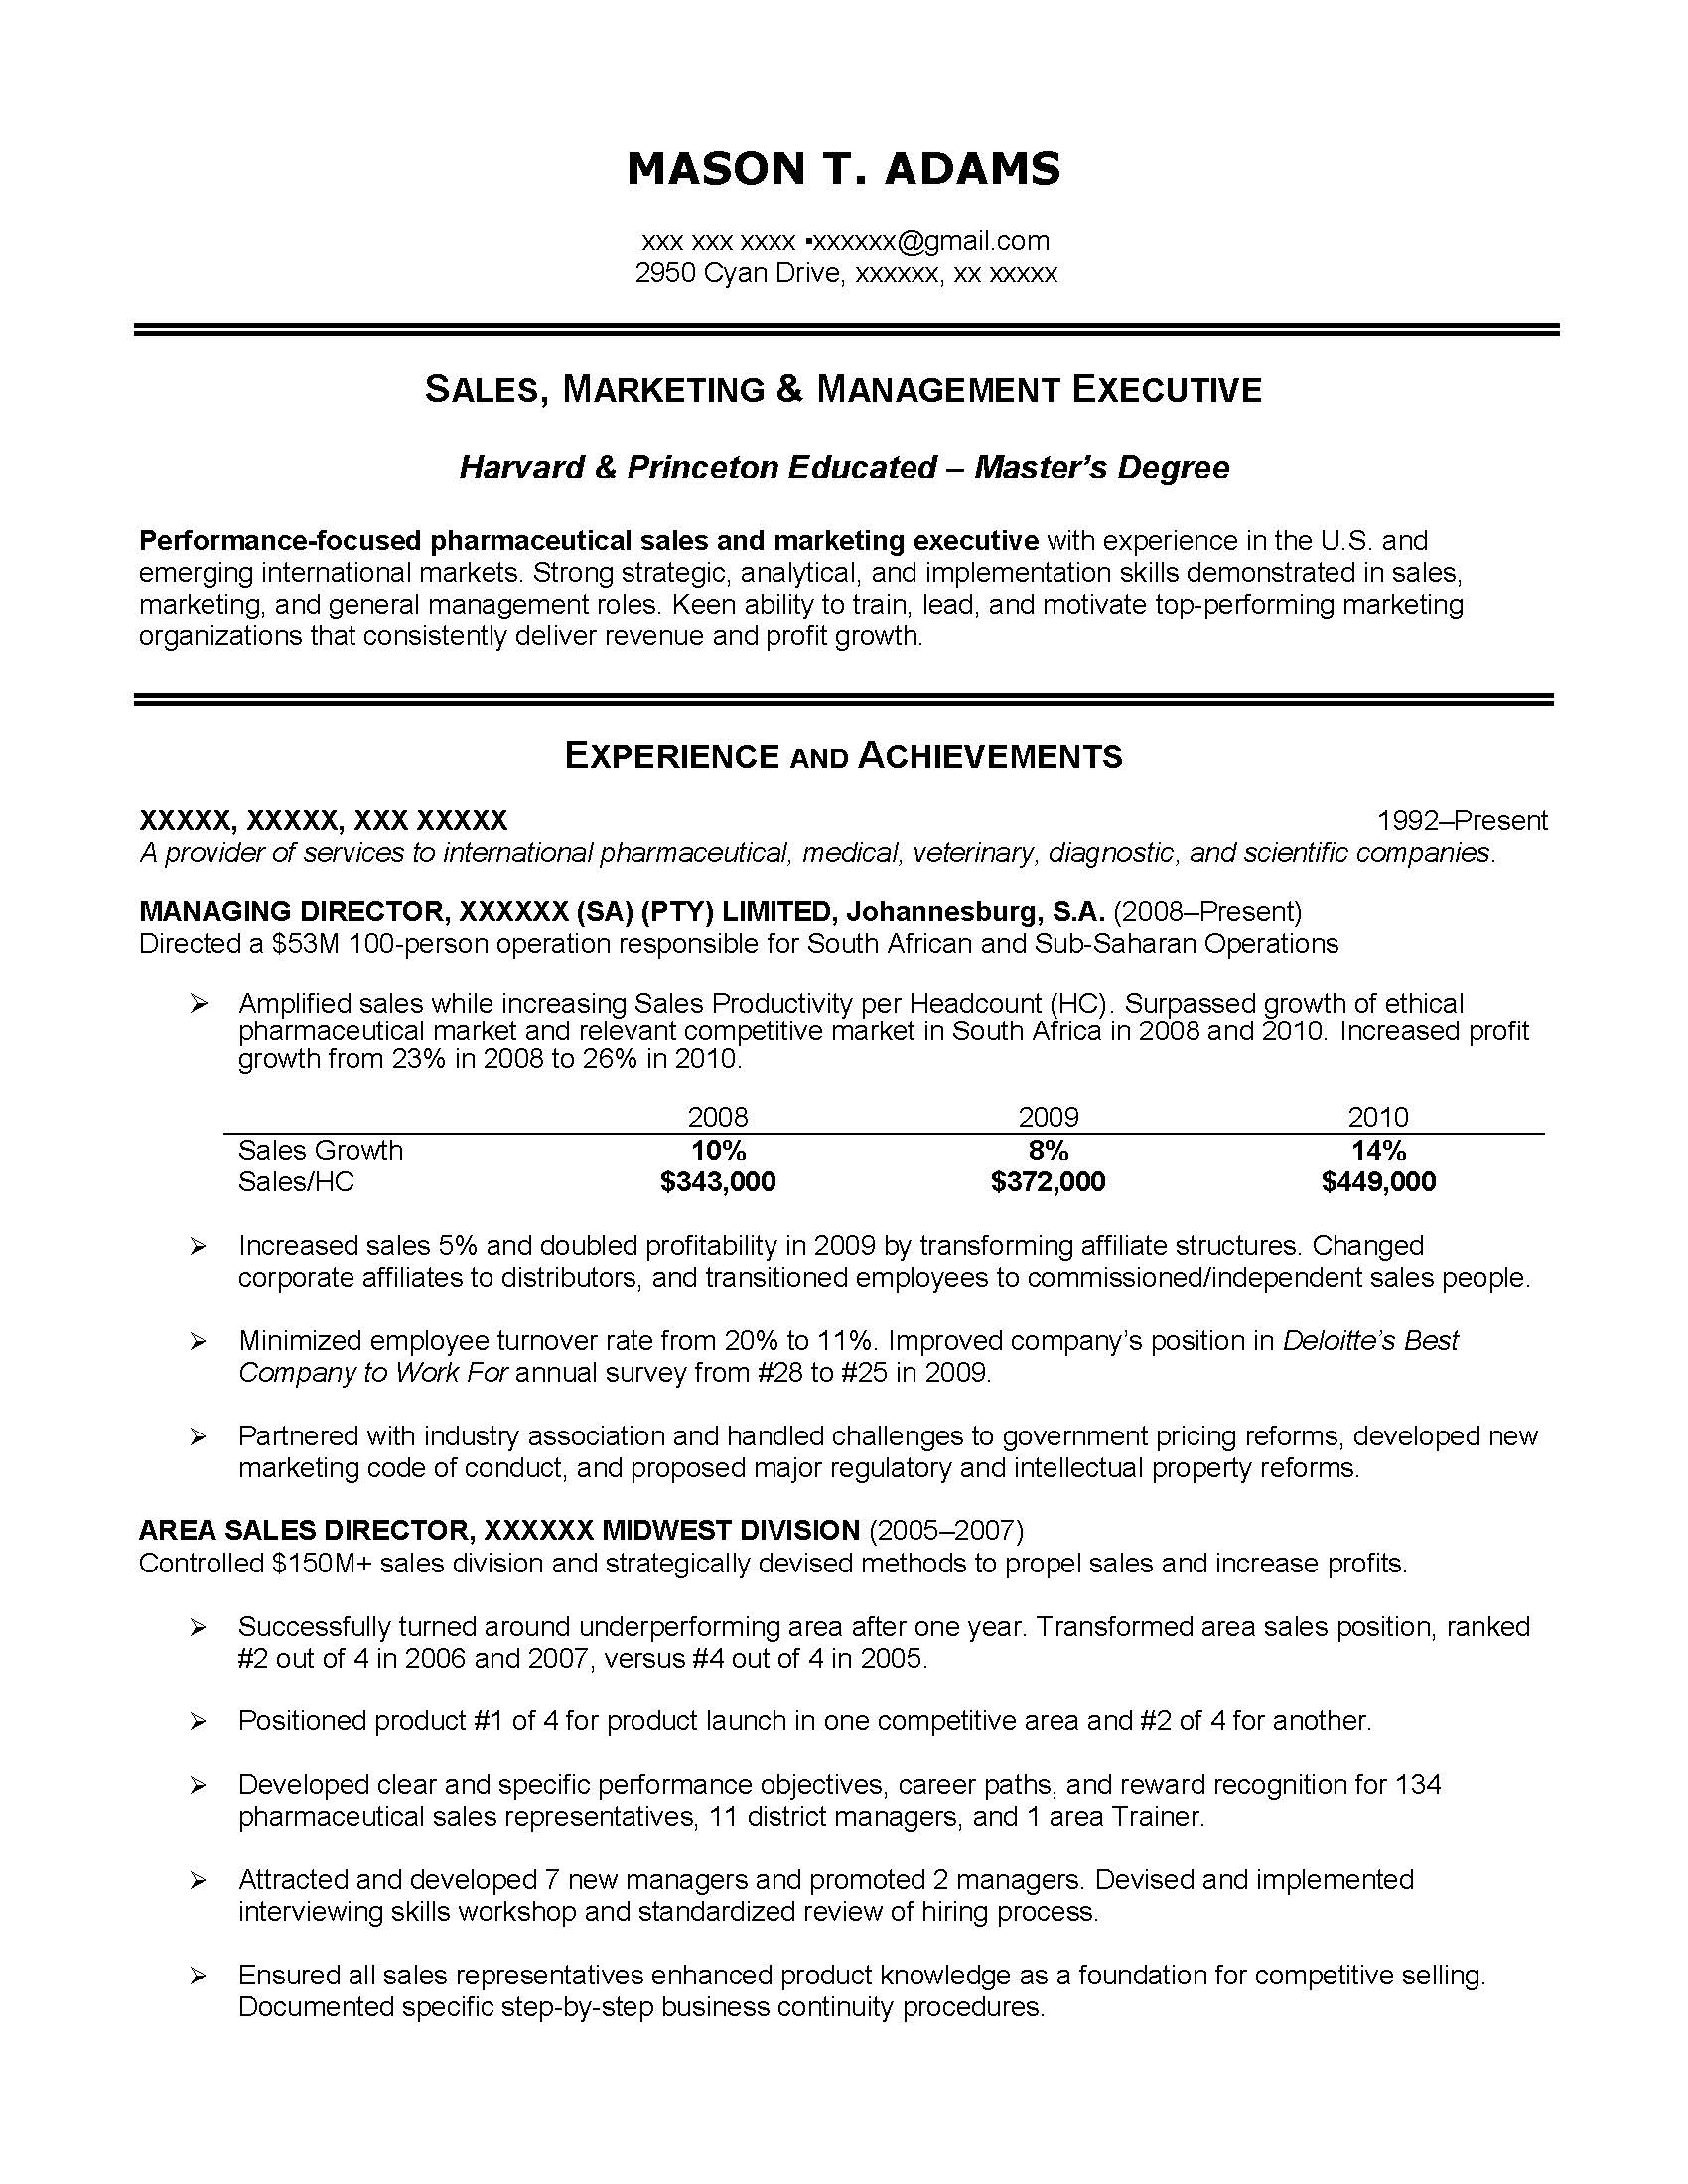 resume sm free professional resume template resume for maintenance manufacturing project manager resume pharmaceutical manufacturing resume - Product Line Manager Resume Sample